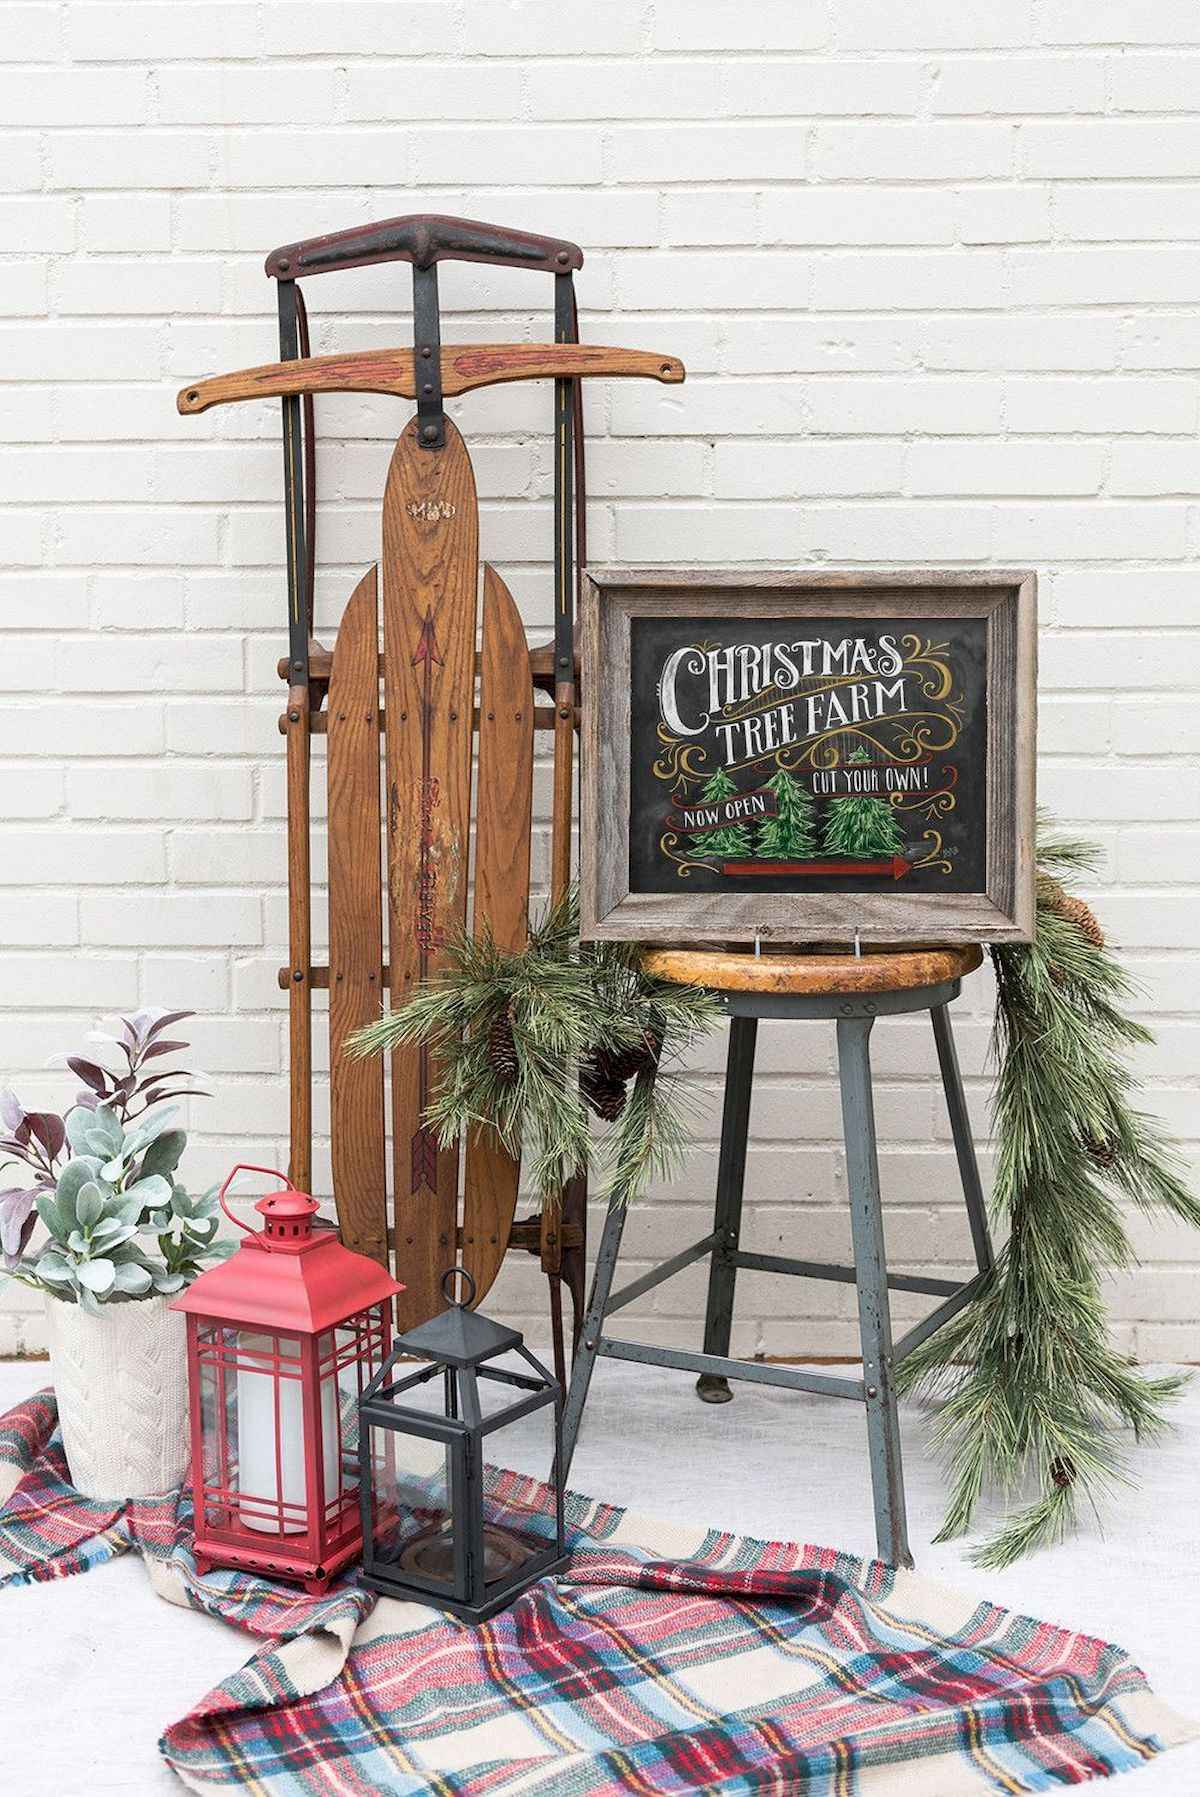 30 rustic and vintage christmas tree ideas decorations (1)